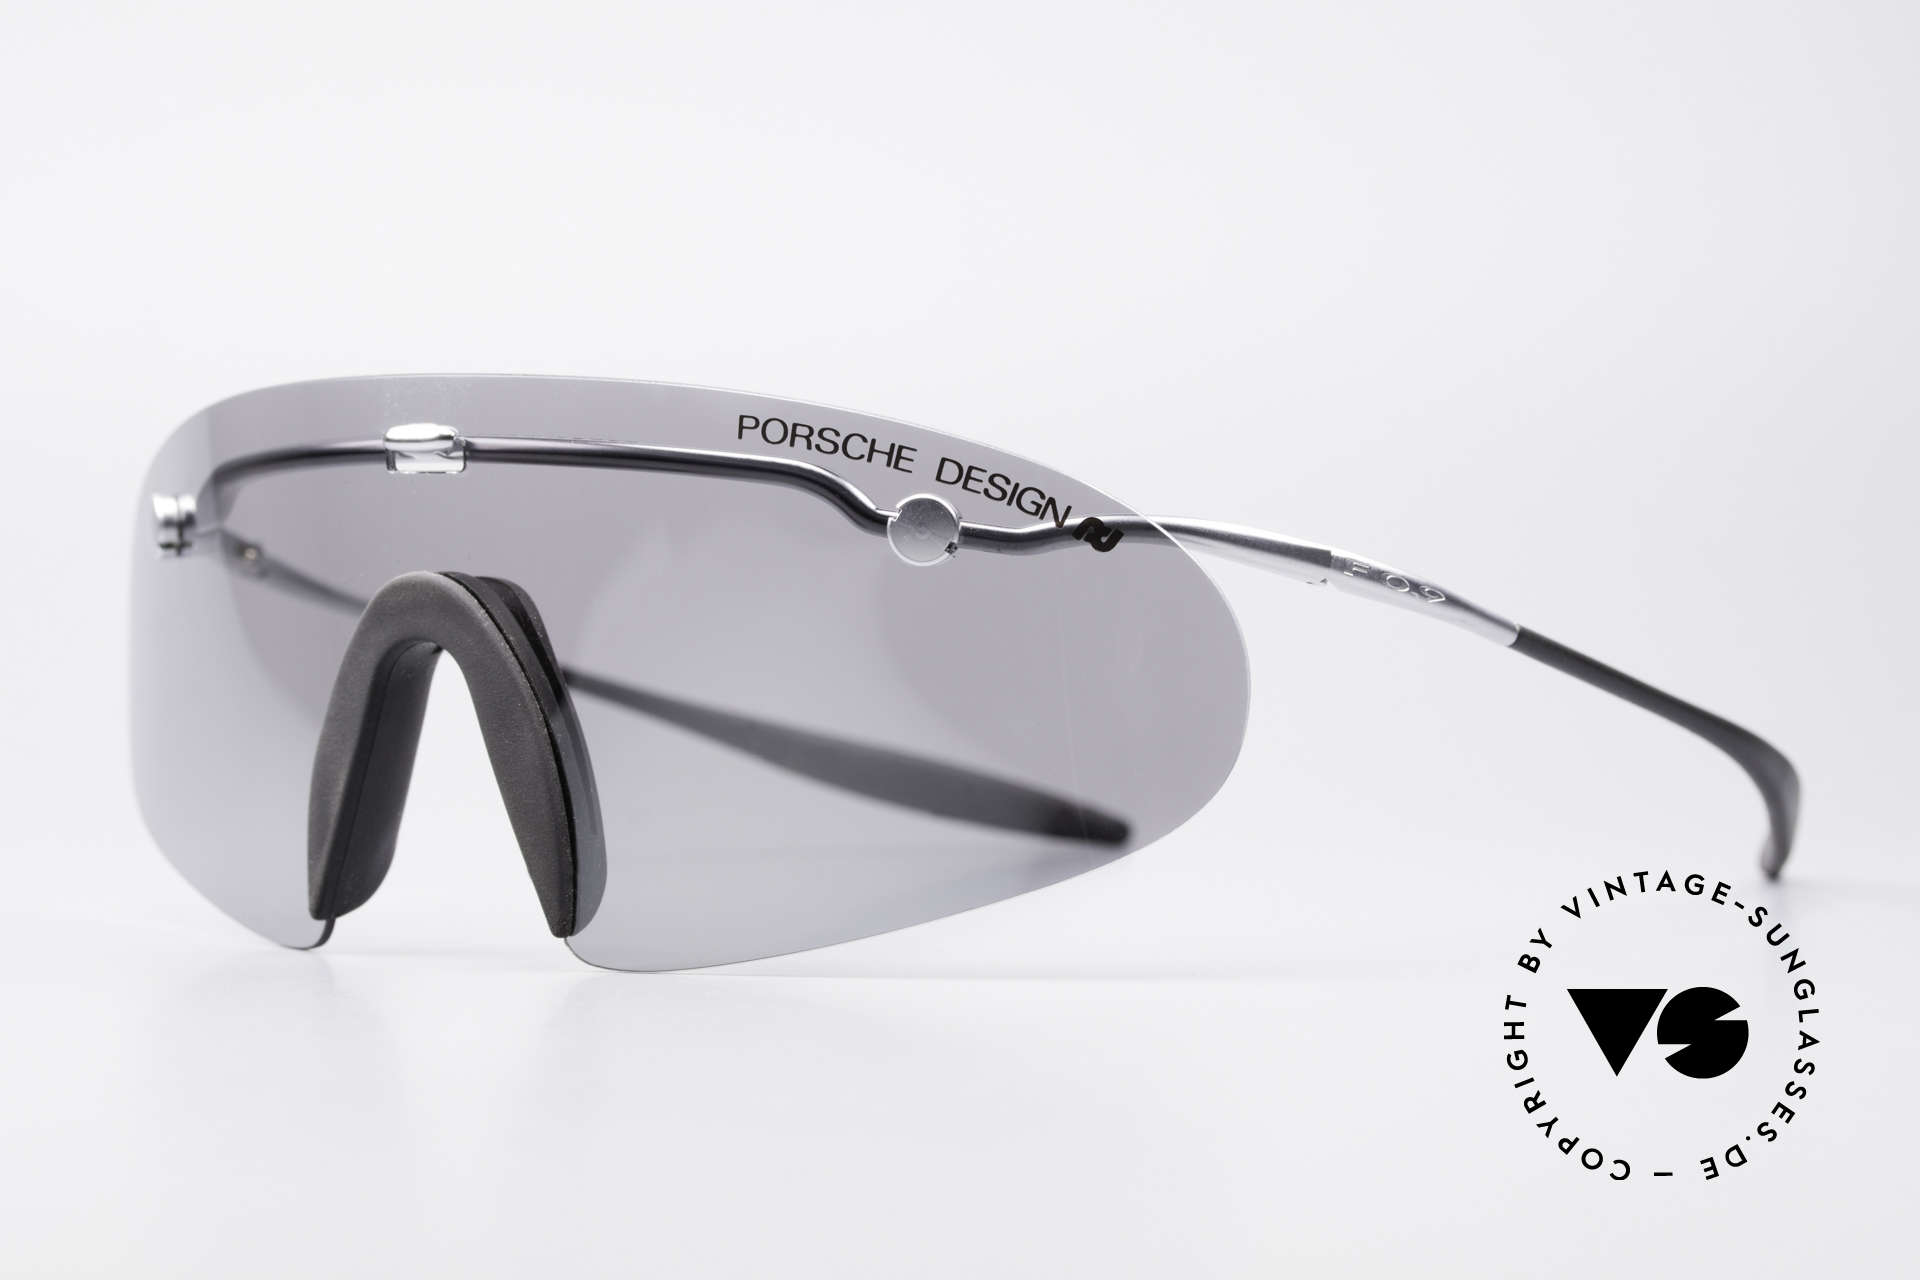 Porsche 5692 F09 Flat Shades Silver Mirrored, ingenious flat & compact, when folded (fits every pocket), Made for Men